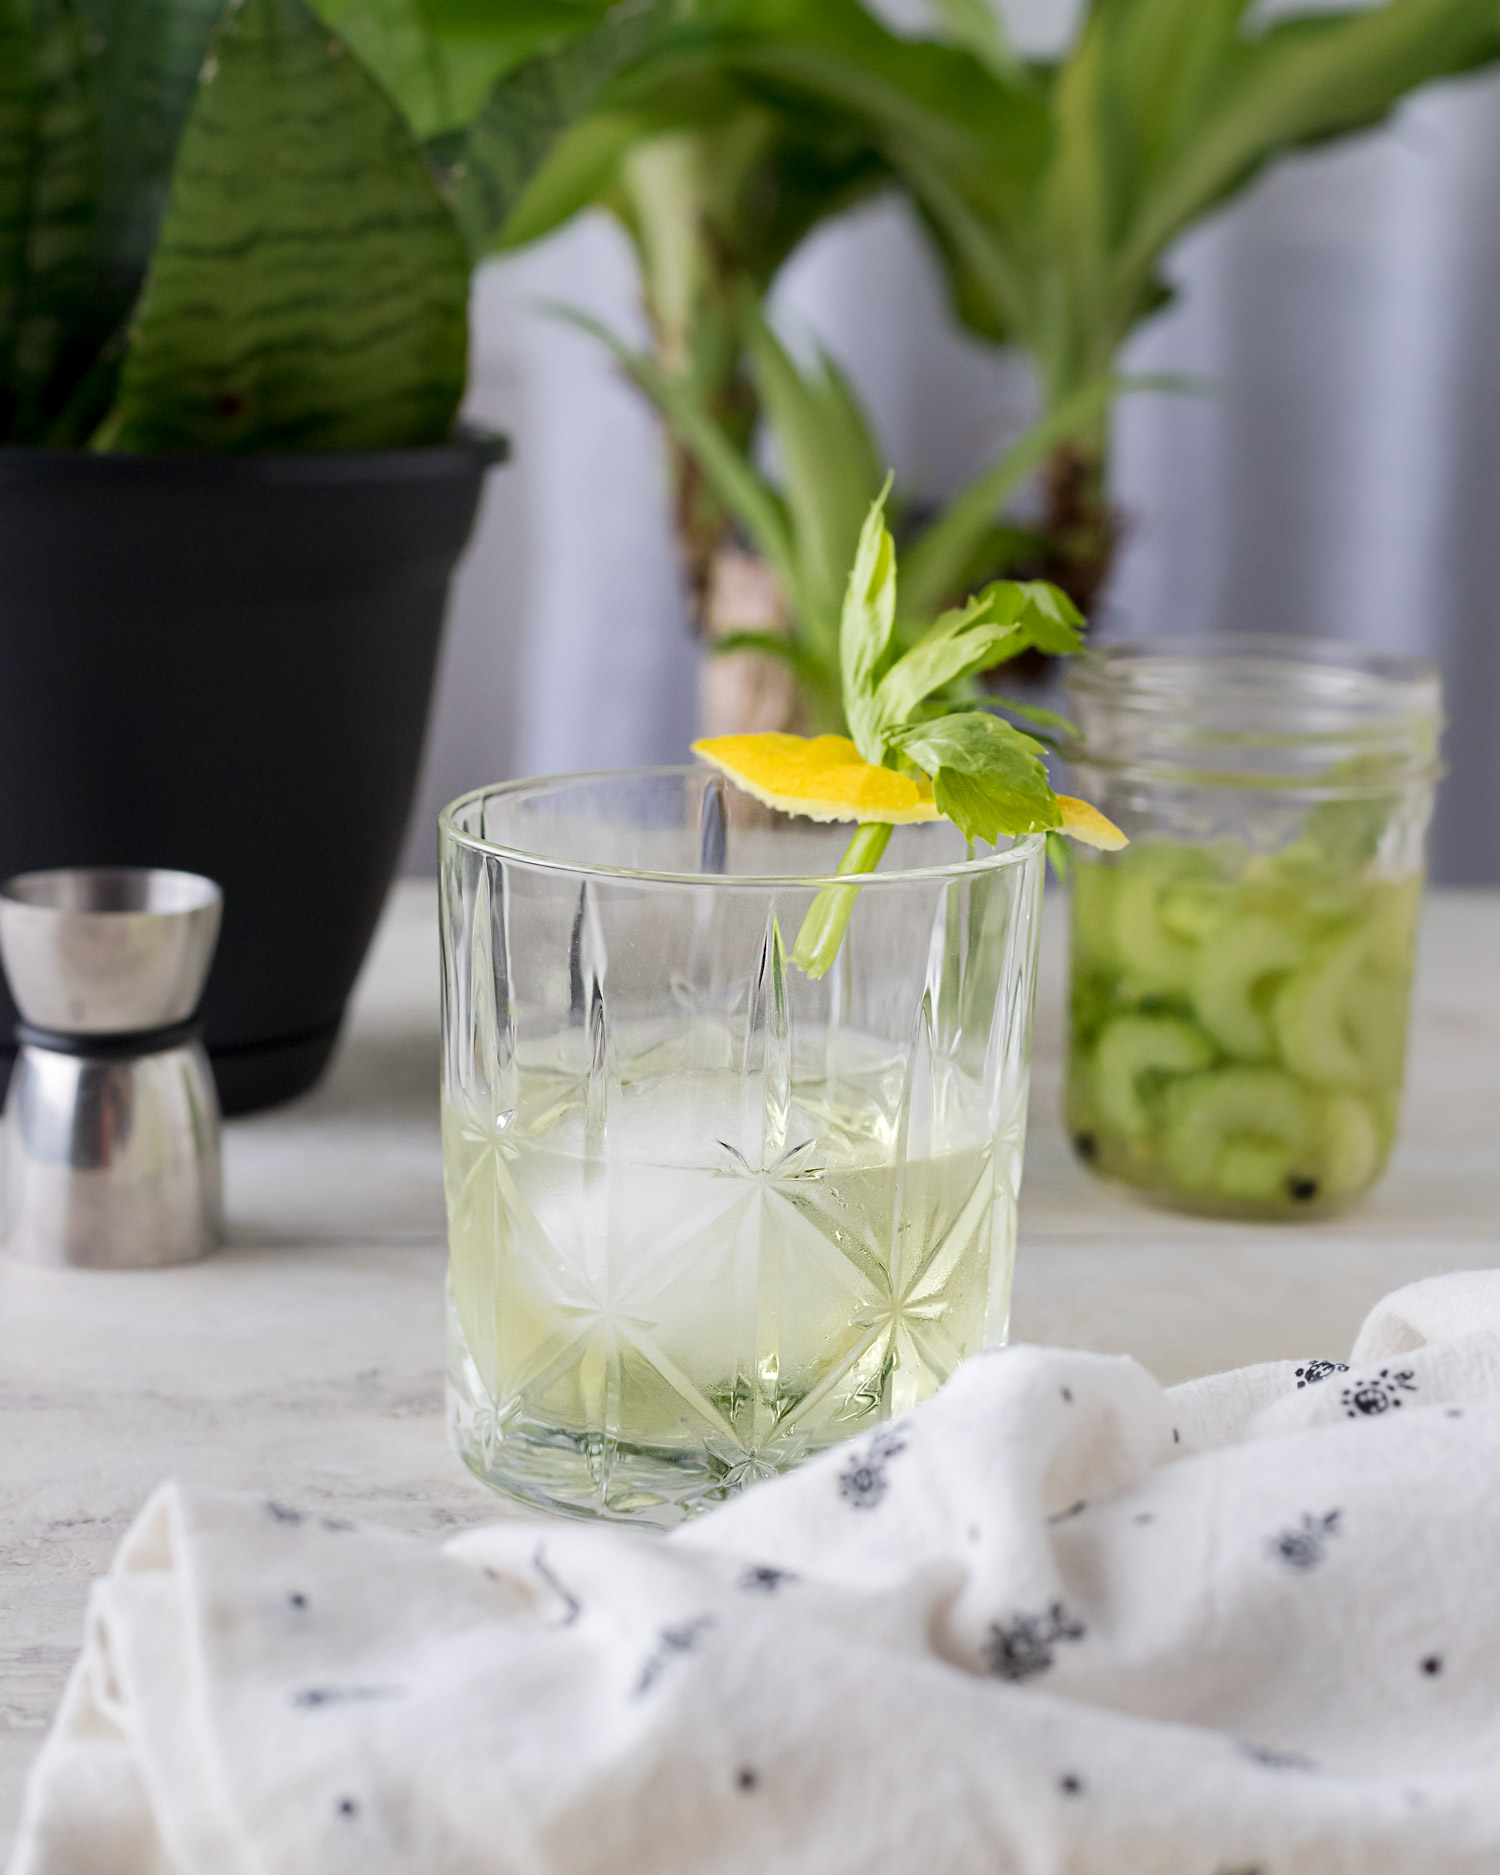 This white negroni recipe uses celery infused gin for an earthy spin on the original cocktail making for a delightfully bright and bitter drink. Negroni Week Cocktail. #Negroni #Celery #CeleryJuice #Gin #GinCocktail #CraftCocktail #CocktailRecipe #DrinkRecipe #NegroniWeek